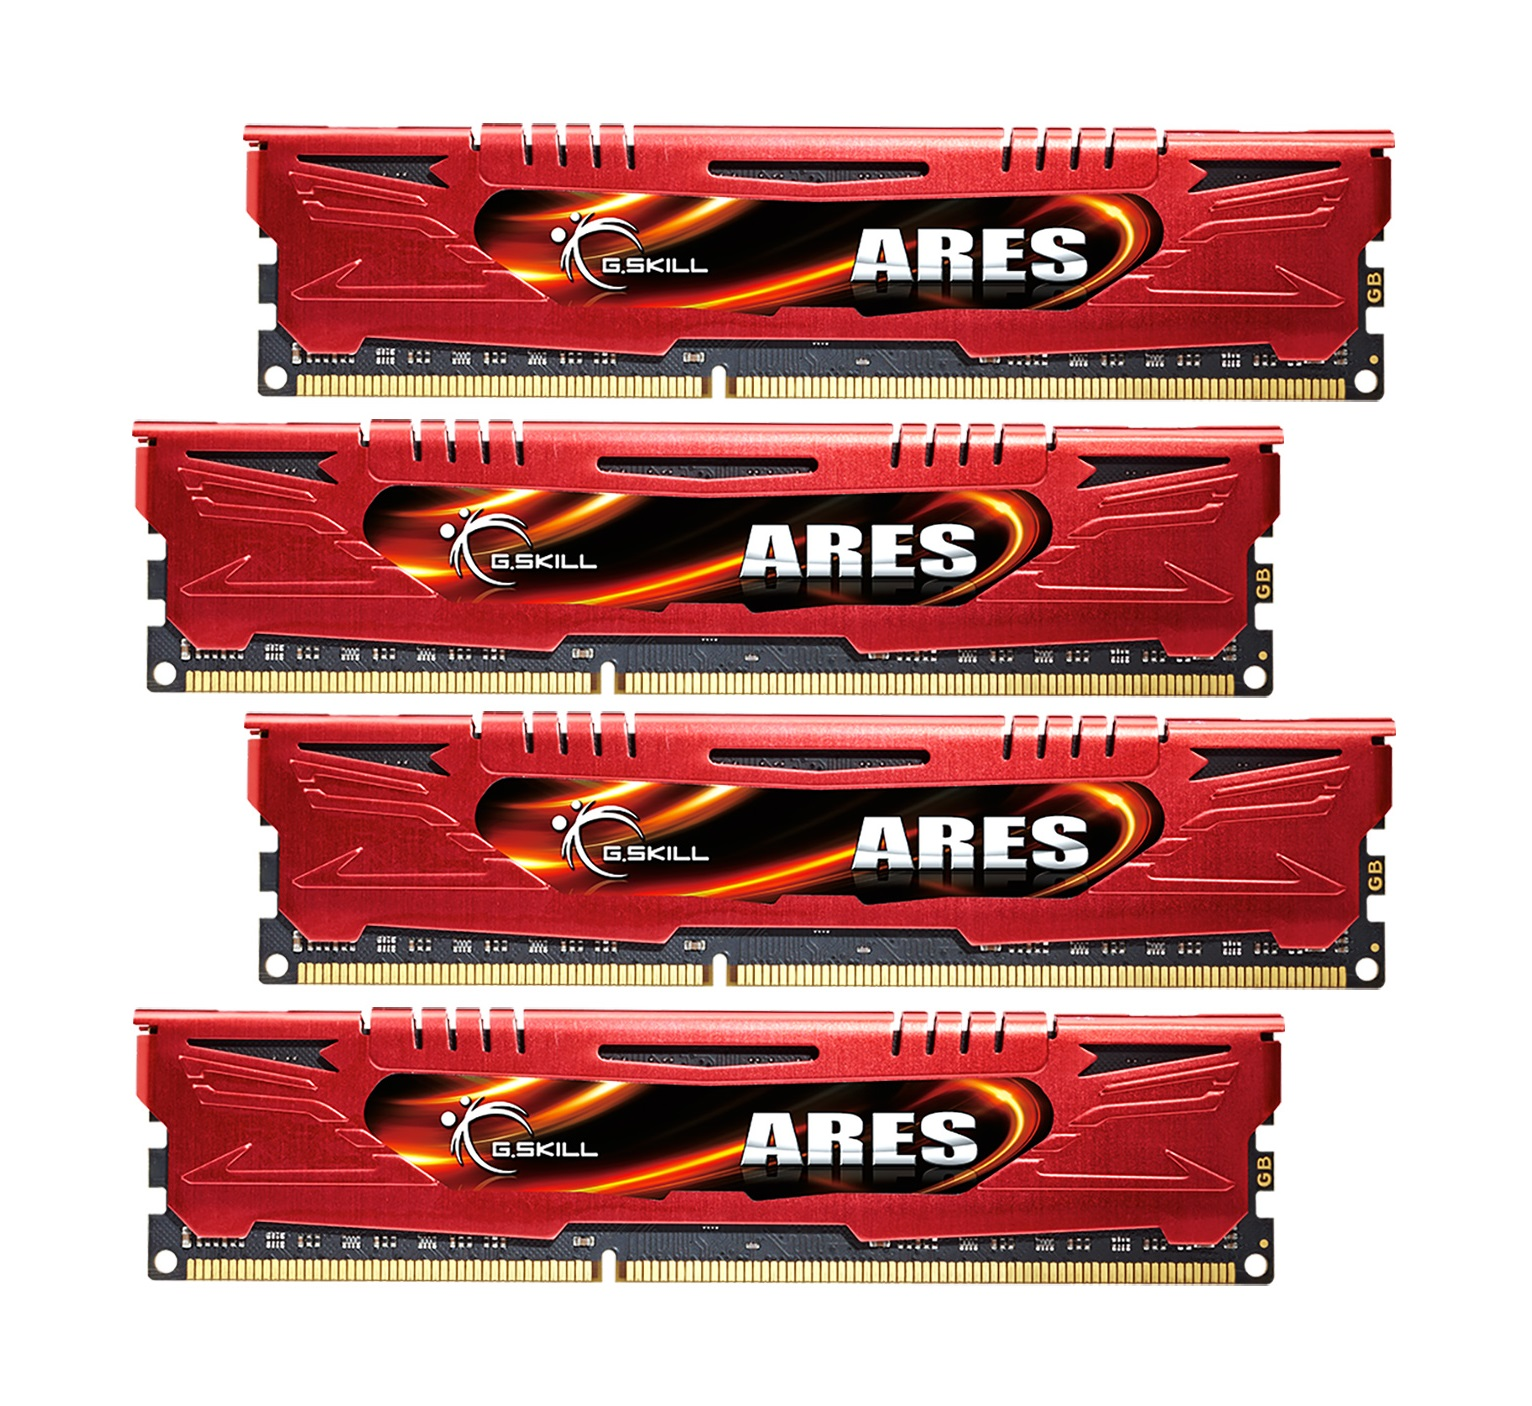 32GB G.Skill DDR3 PC3-17000 2133MHz Ares Series Low Profile (11-13-13-31) Red Quad Channel kit 4x8GB